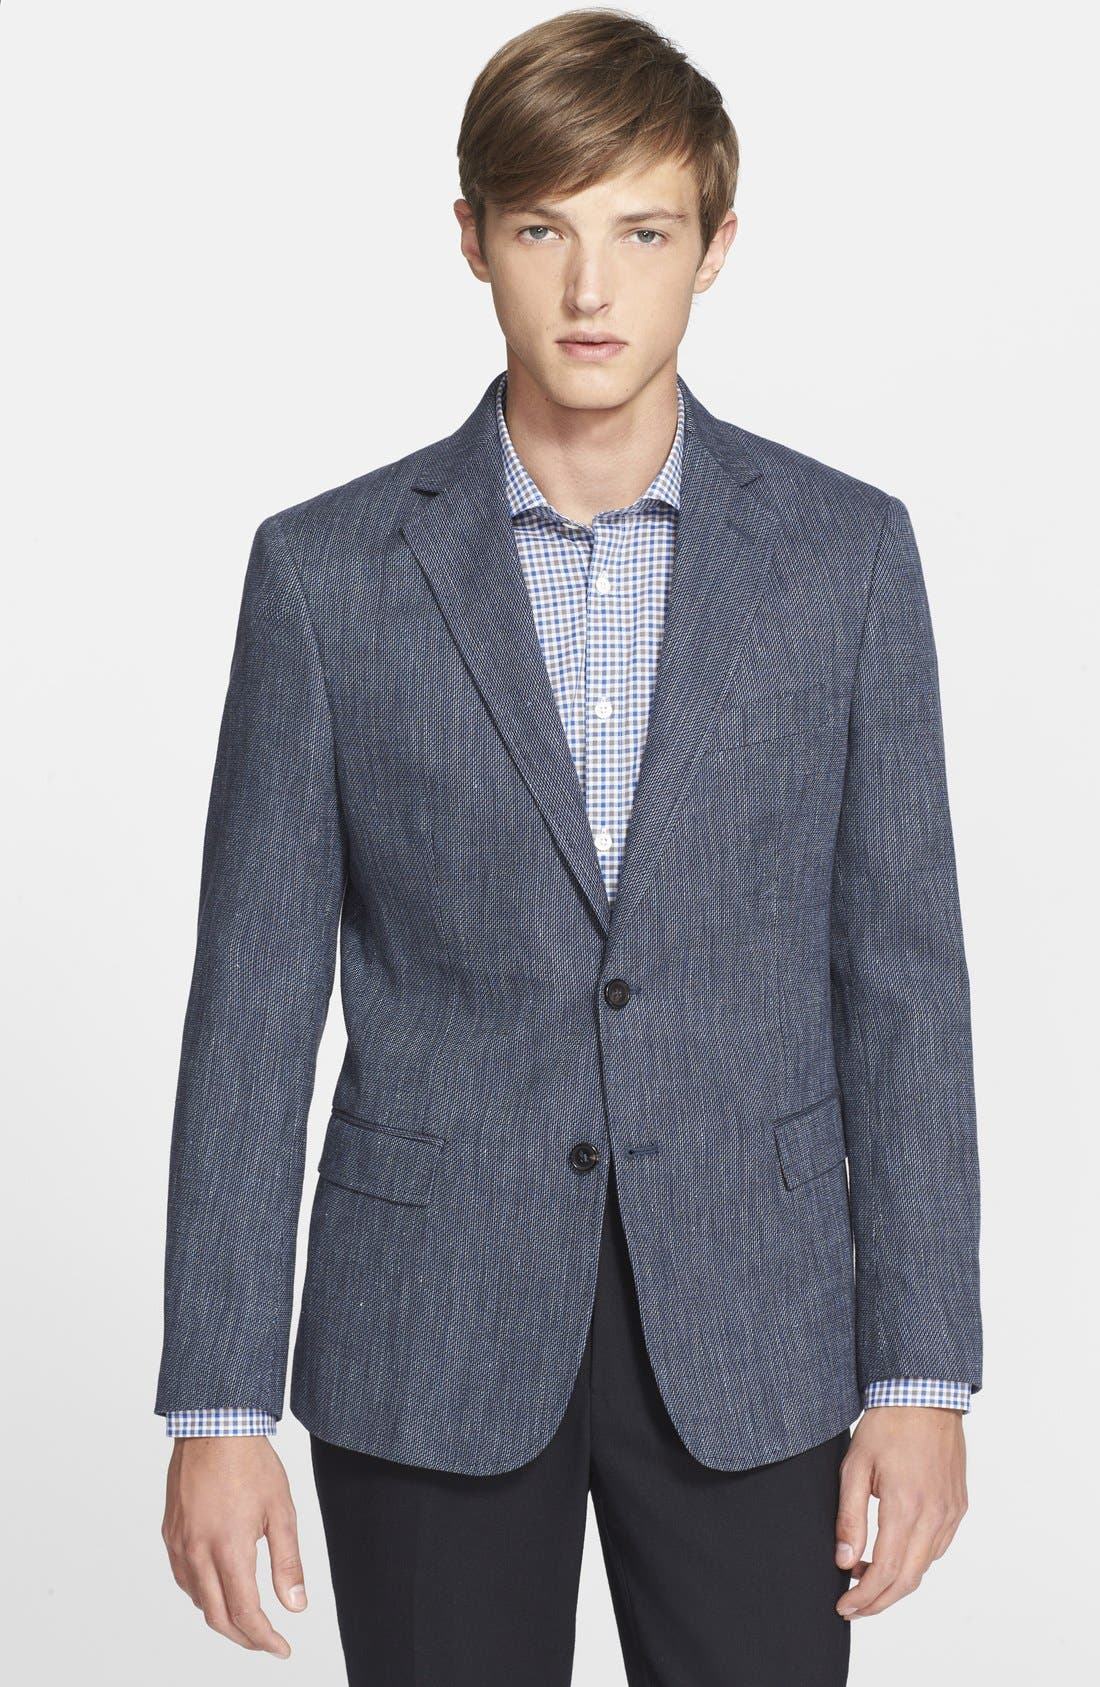 BILLY REID, 'Lexington' Trim Fit Cotton, Linen & Silk Sport Coat, Main thumbnail 1, color, 462